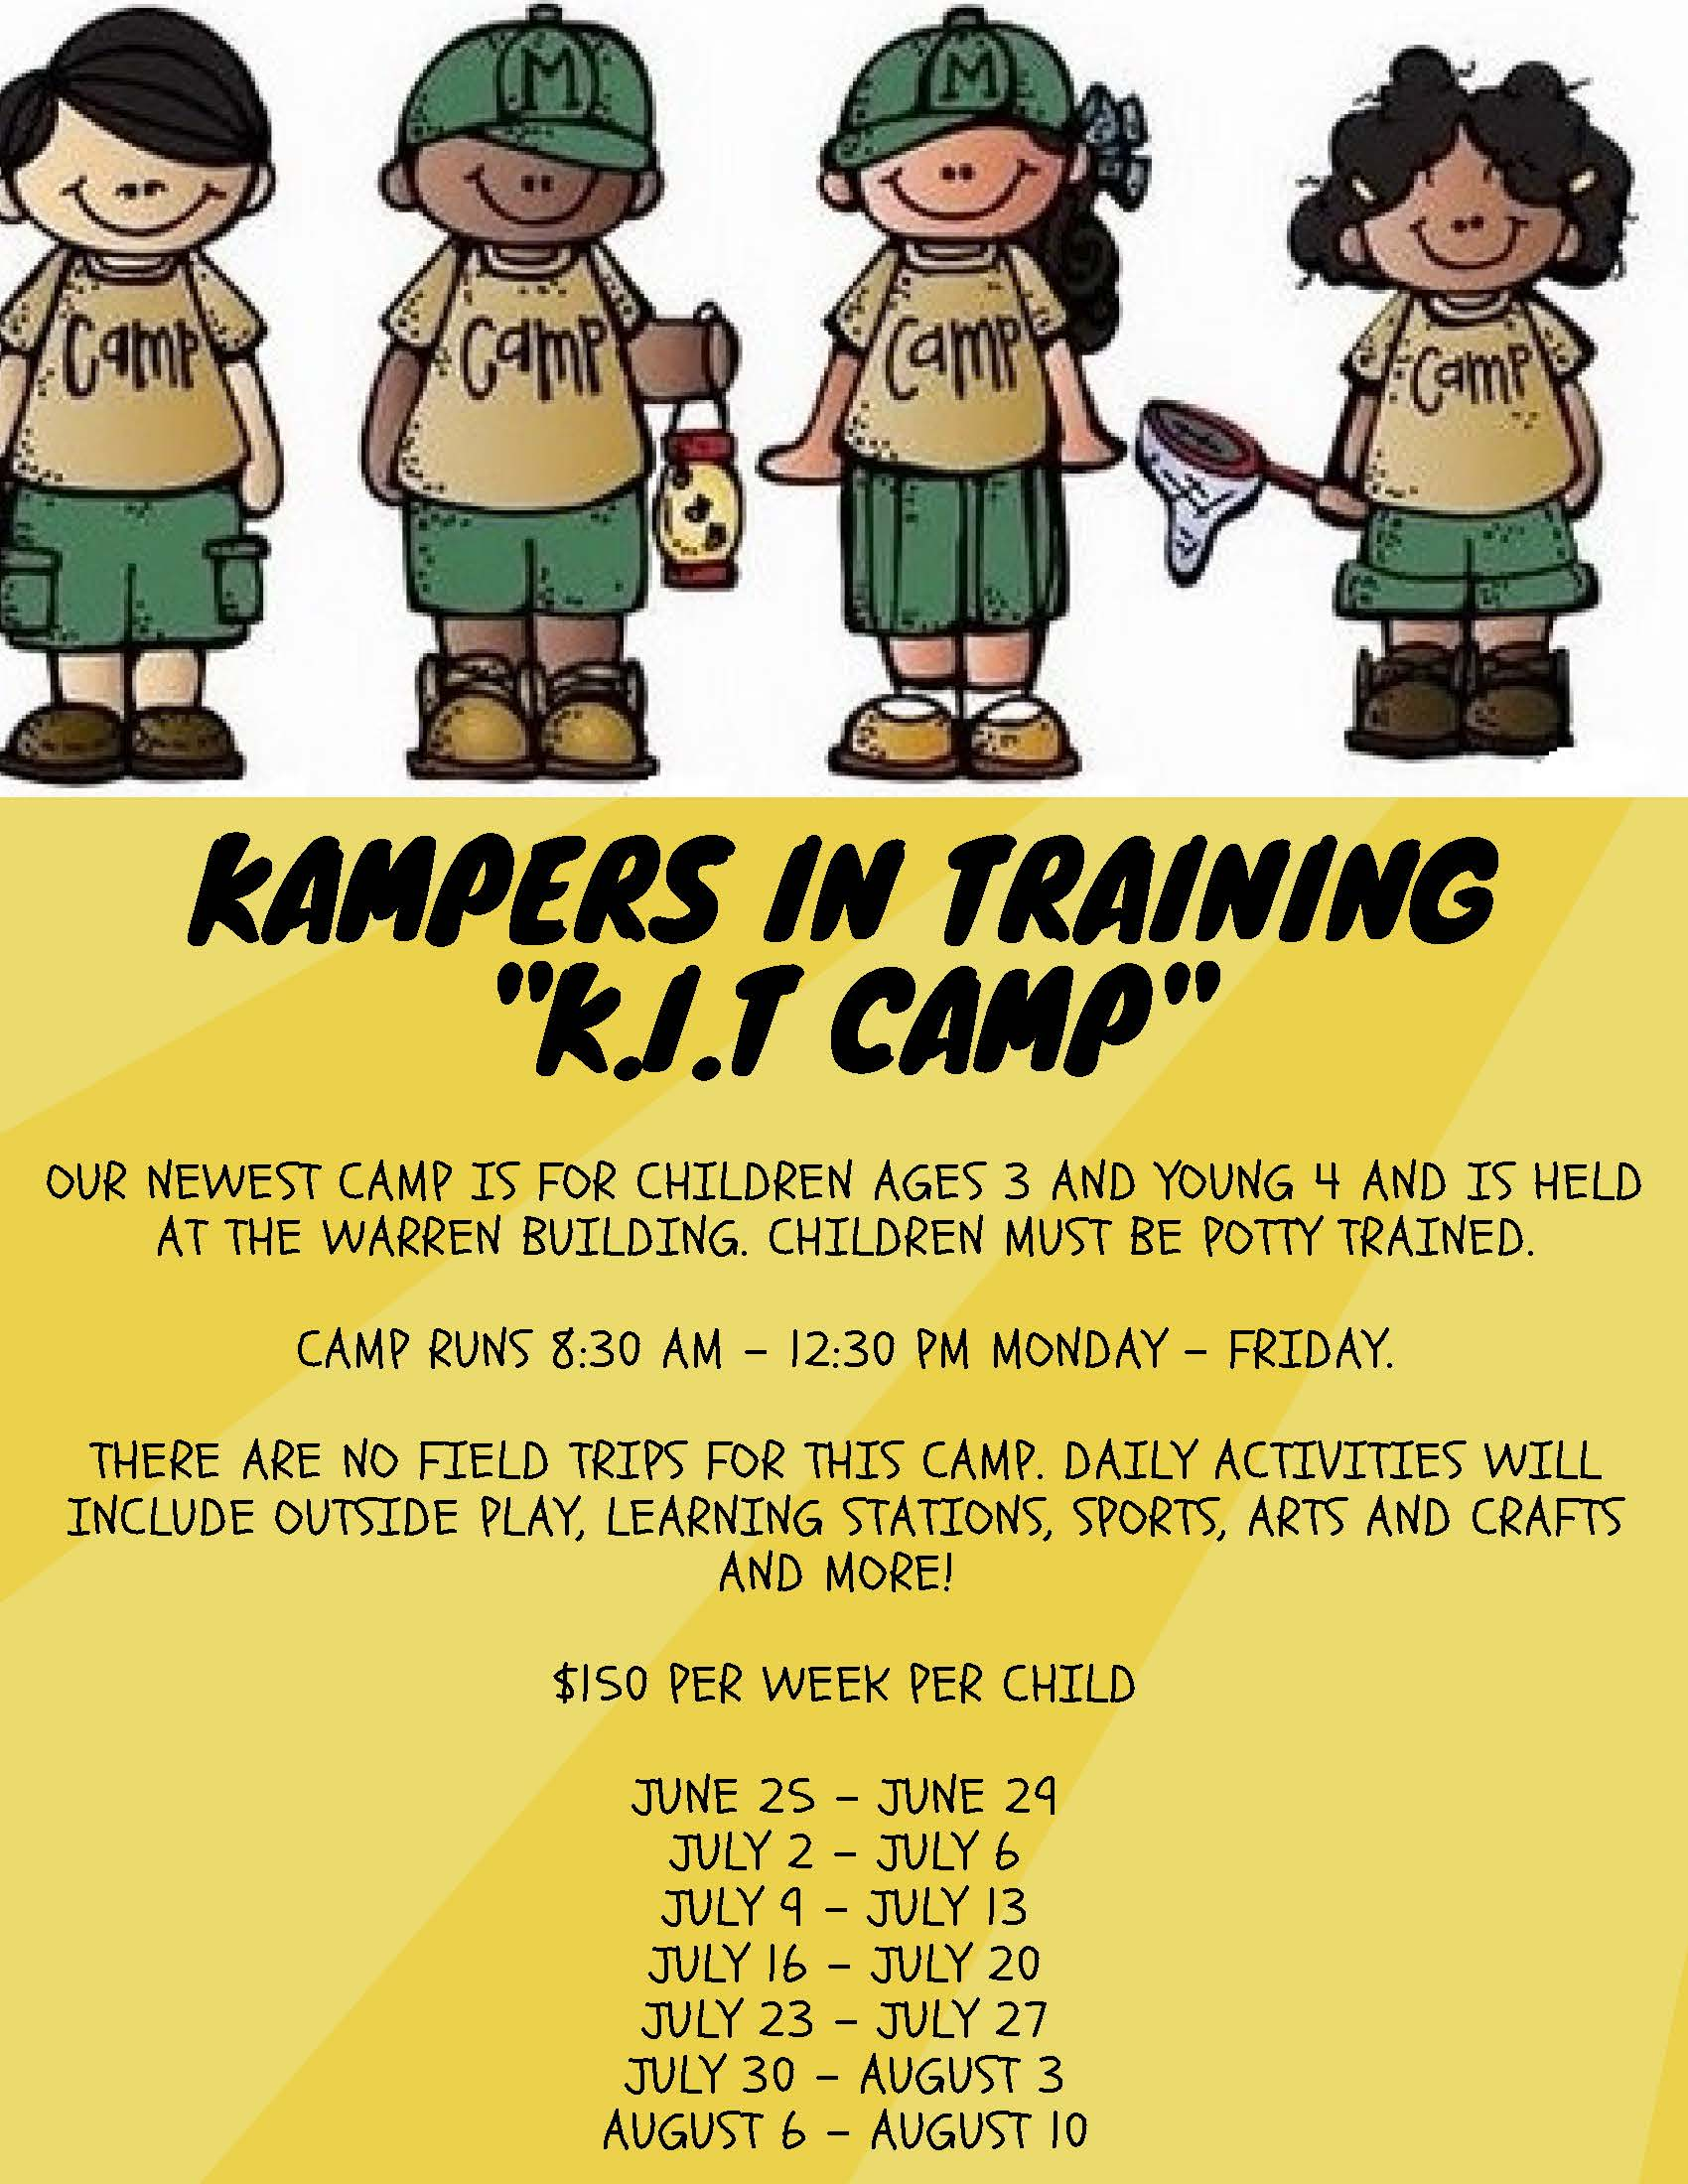 campers in training